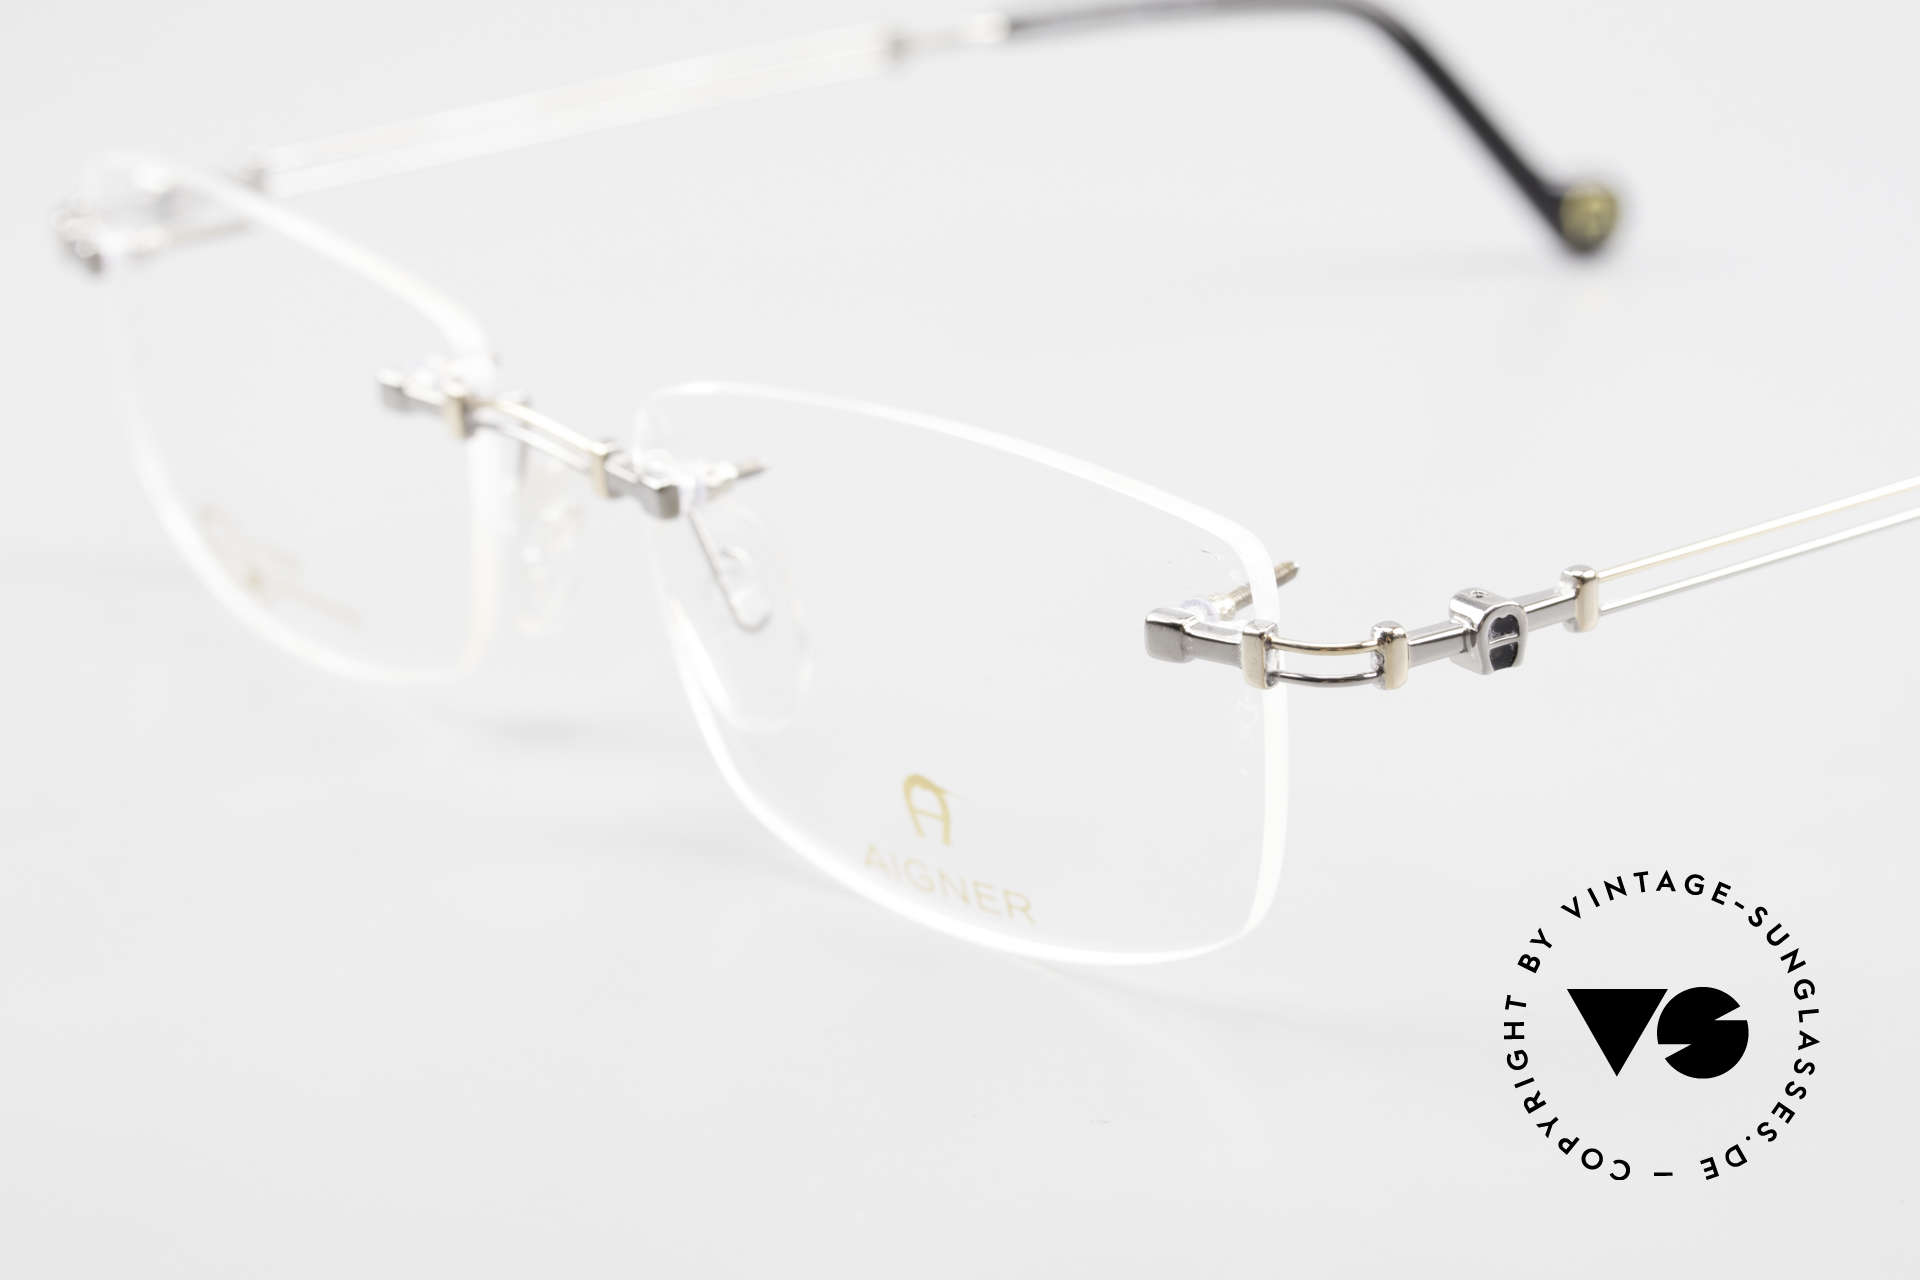 Aigner EA498 Rimless 90's Glasses Unisex, allergy-free and 18kt gold-plated parts; made in Germany, Made for Men and Women